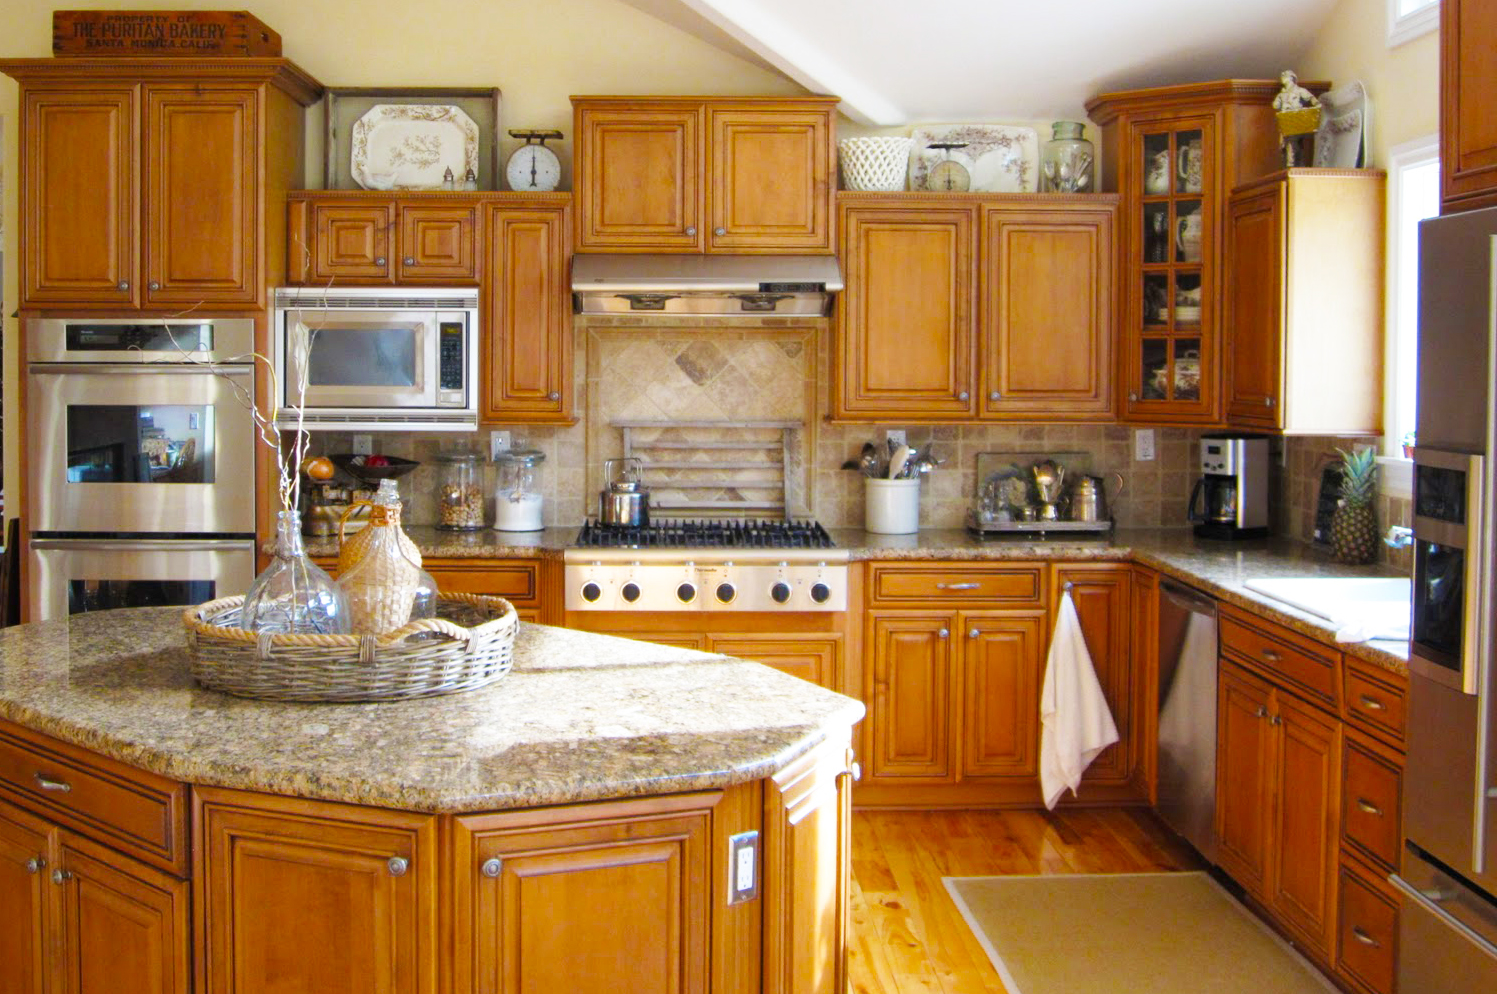 wood kitchen cabinets with kitchen remodel design in all wood cabinetry dealers for select kitchen cabinets